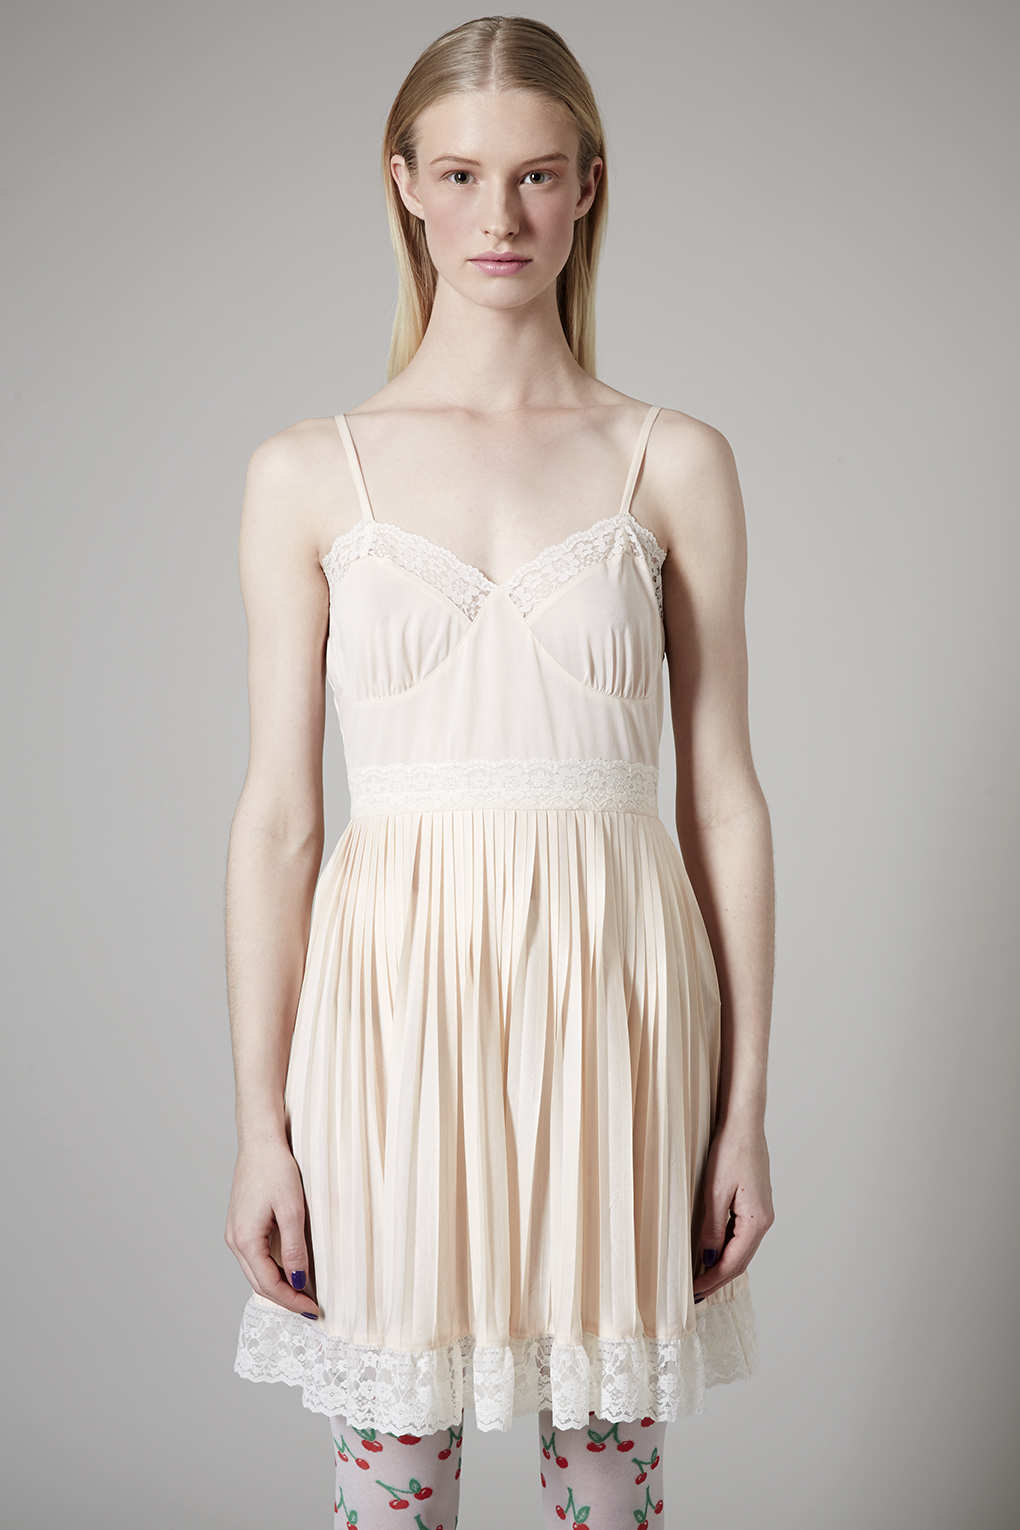 Topshop Pale Pink Slip Dress in White | Lyst